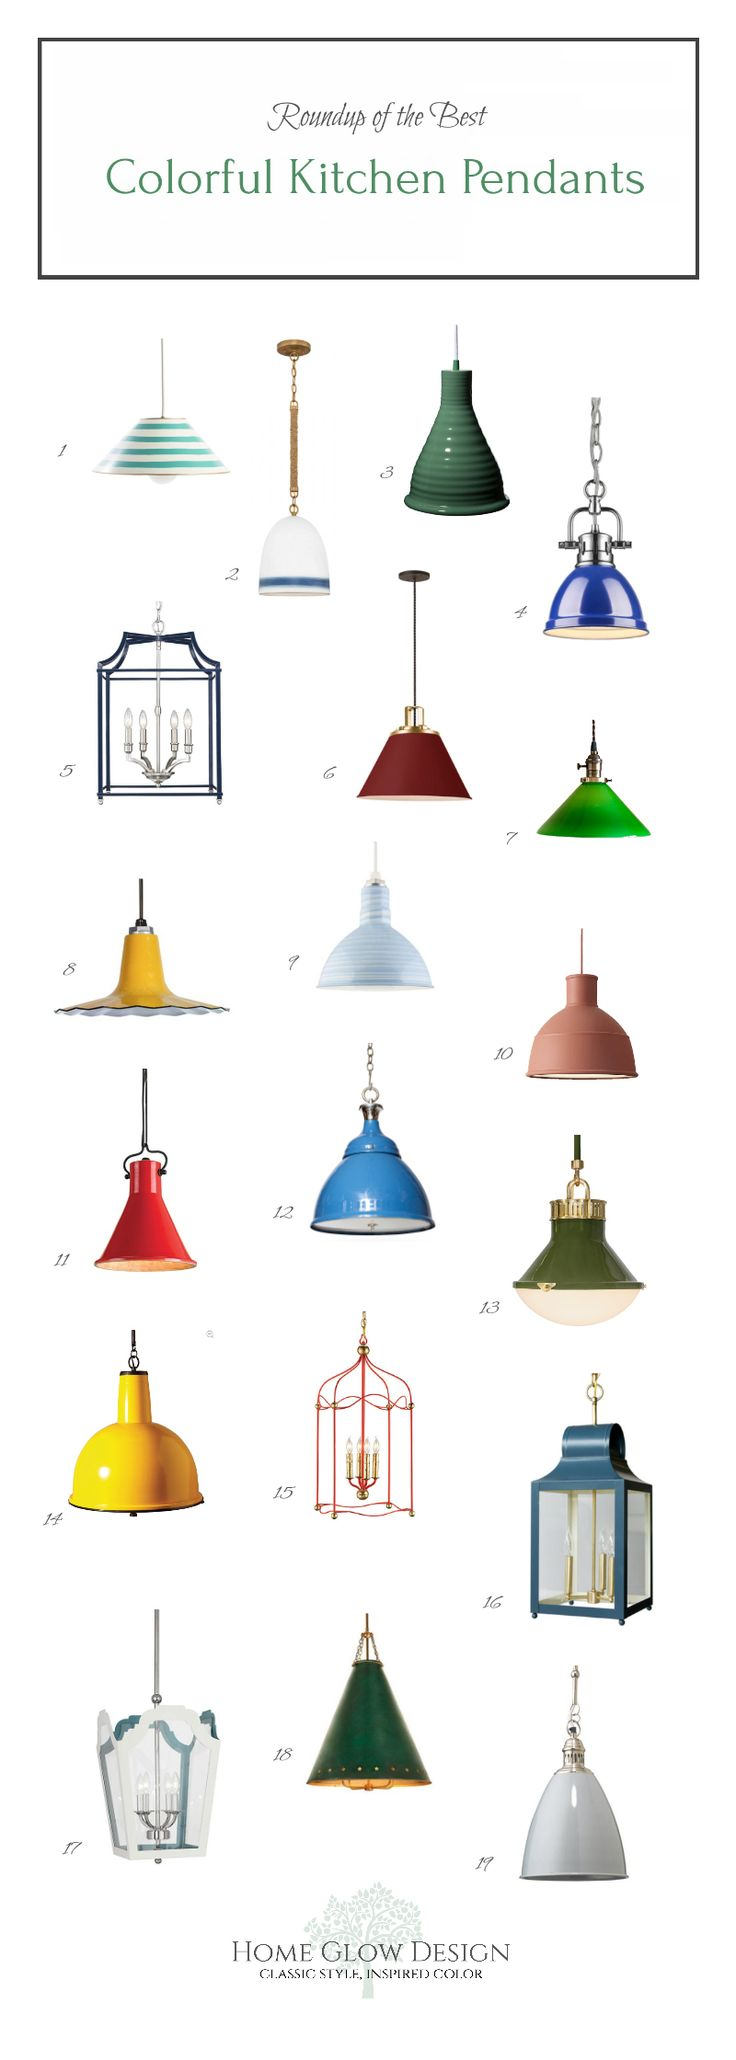 Roundup Colorful Kitchen Island Lanterns Pendants